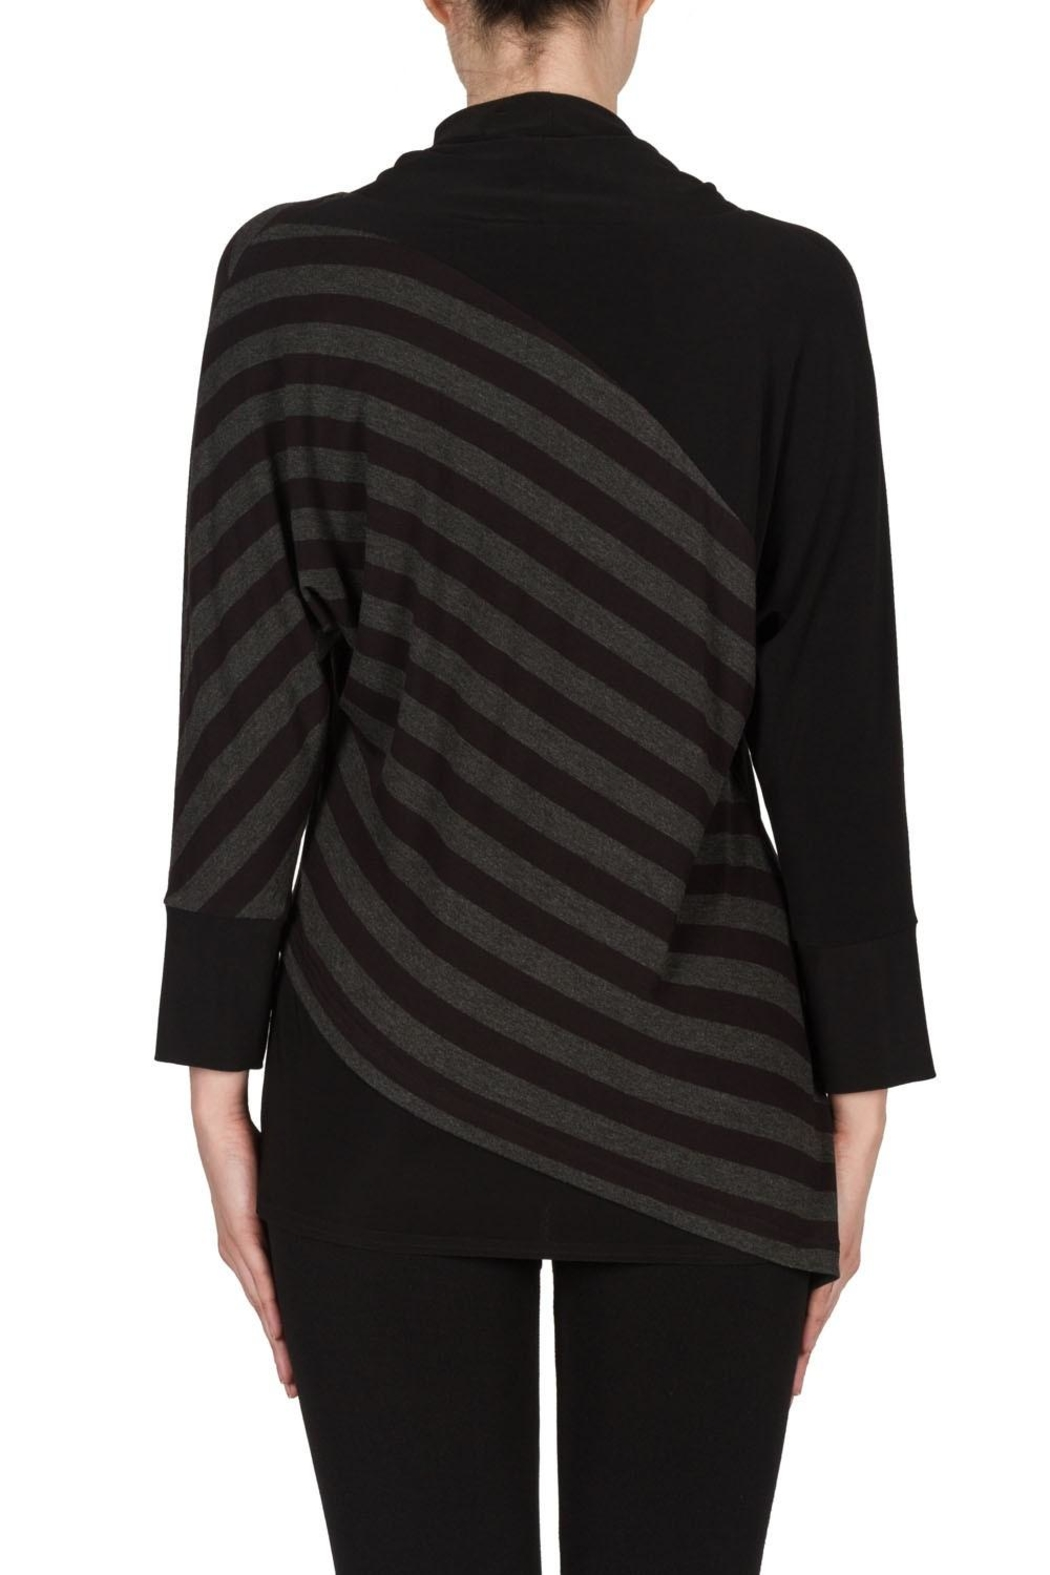 Joseph Ribkoff Striped Cowl Top - Back Cropped Image